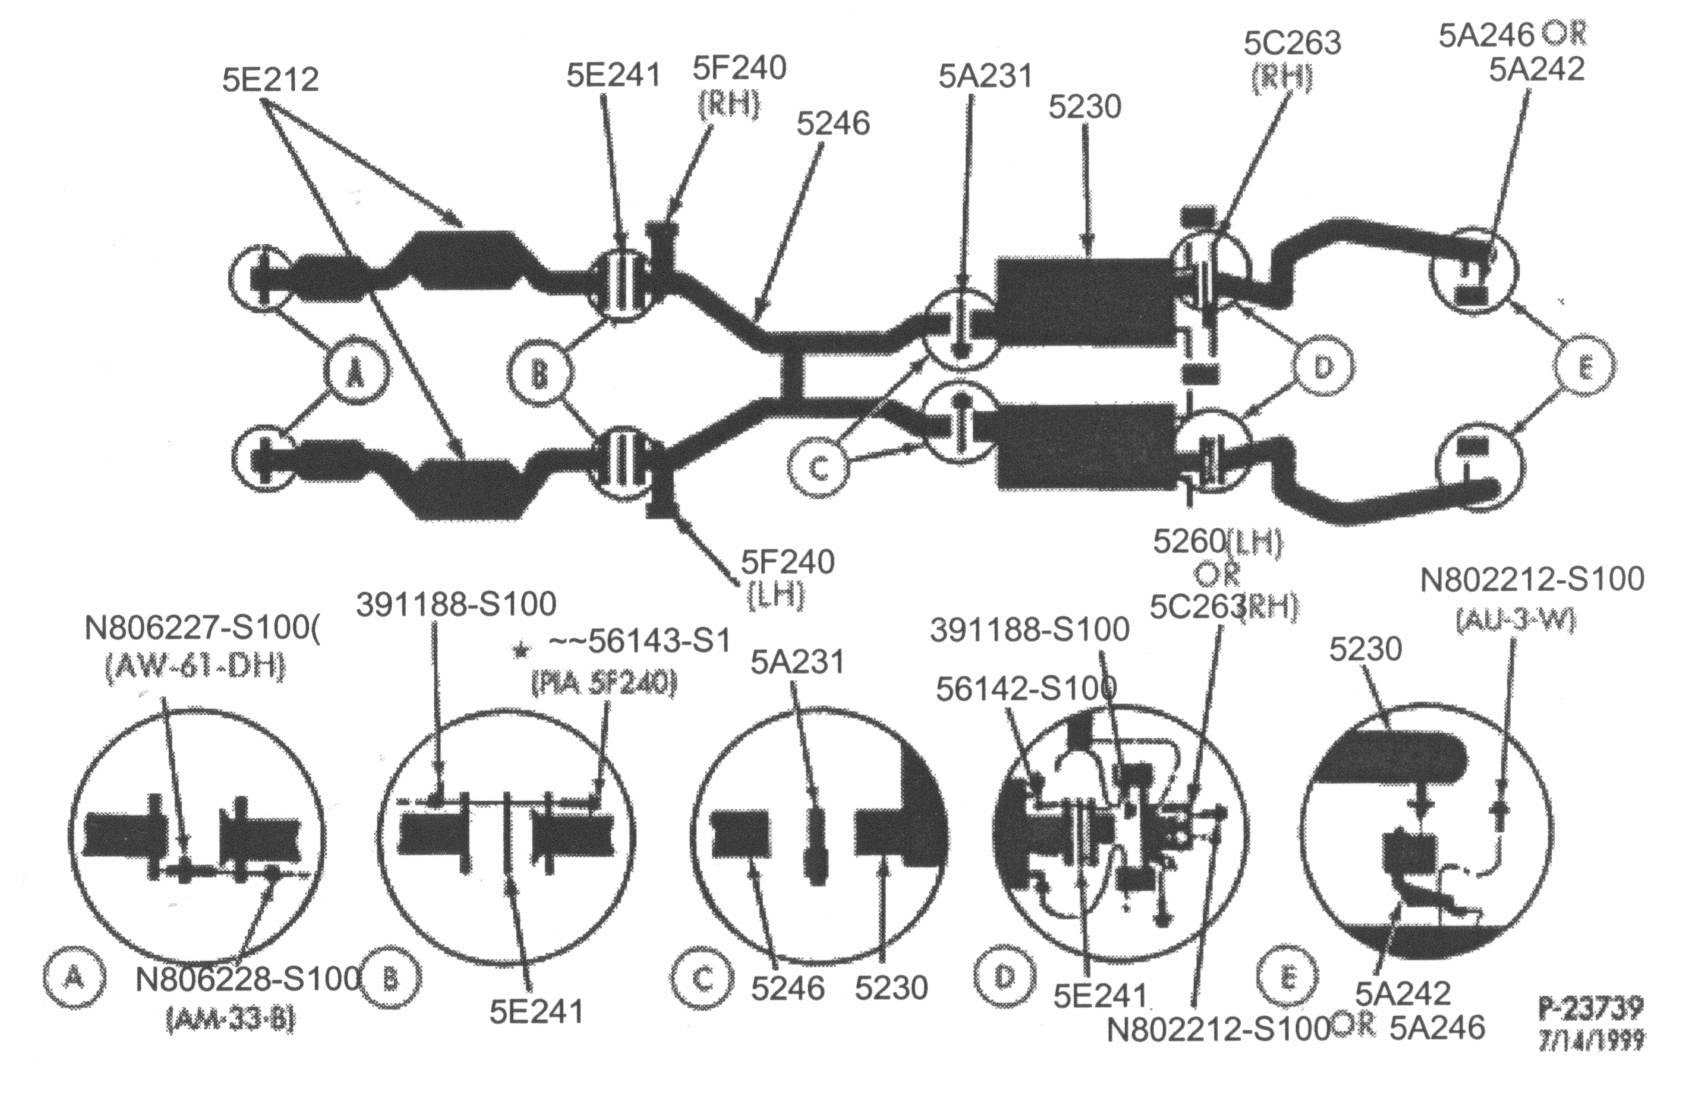 2006 Chevrolet Silverado Evap Solenoid Wiring Diagram besides 1999 F250 Rear Door Diagrame besides 1152957 1999 F250 Super Duty Not Charging in addition Ford F Fuse Box Location Fiesta Diagram Schematic Diagrams Vehicle Wiring Super Duty Free Layout Instructions Trusted Block And Clutch Pcm 2003 F250 7 3 L Lariat also Schematics h. on 1999 ford f 250 super duty fuse box diagram